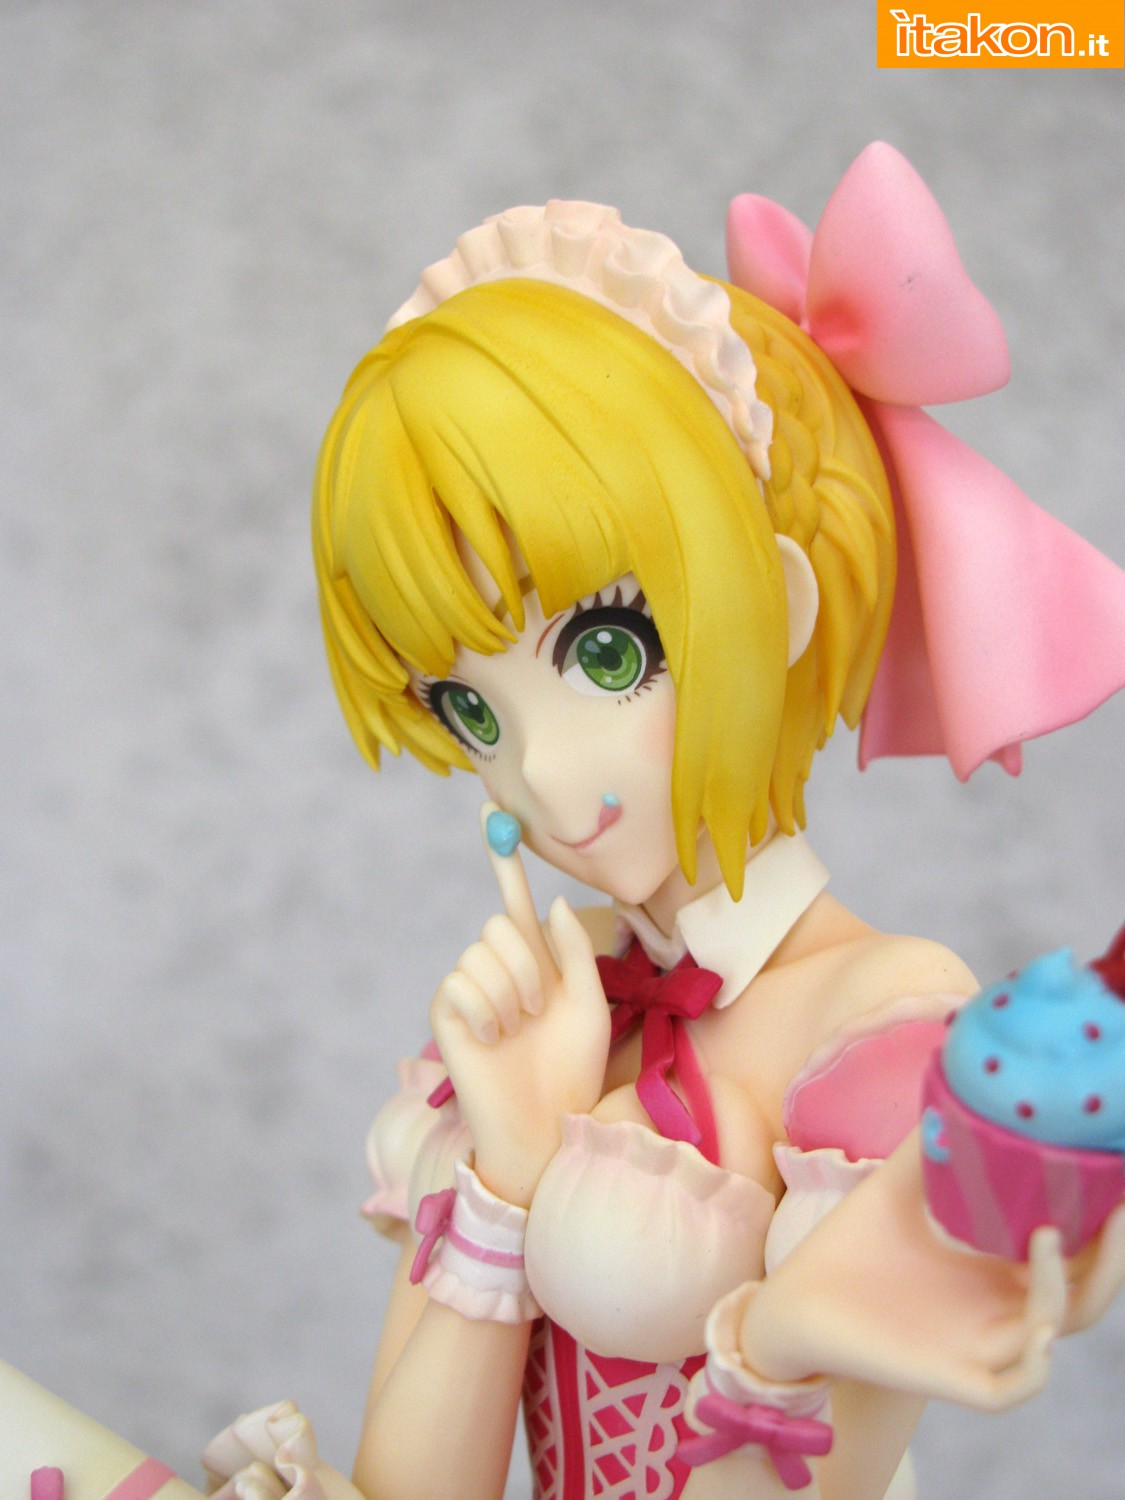 Link a 018 Frederica Miyamoto Little Devil Maid Phat recensione